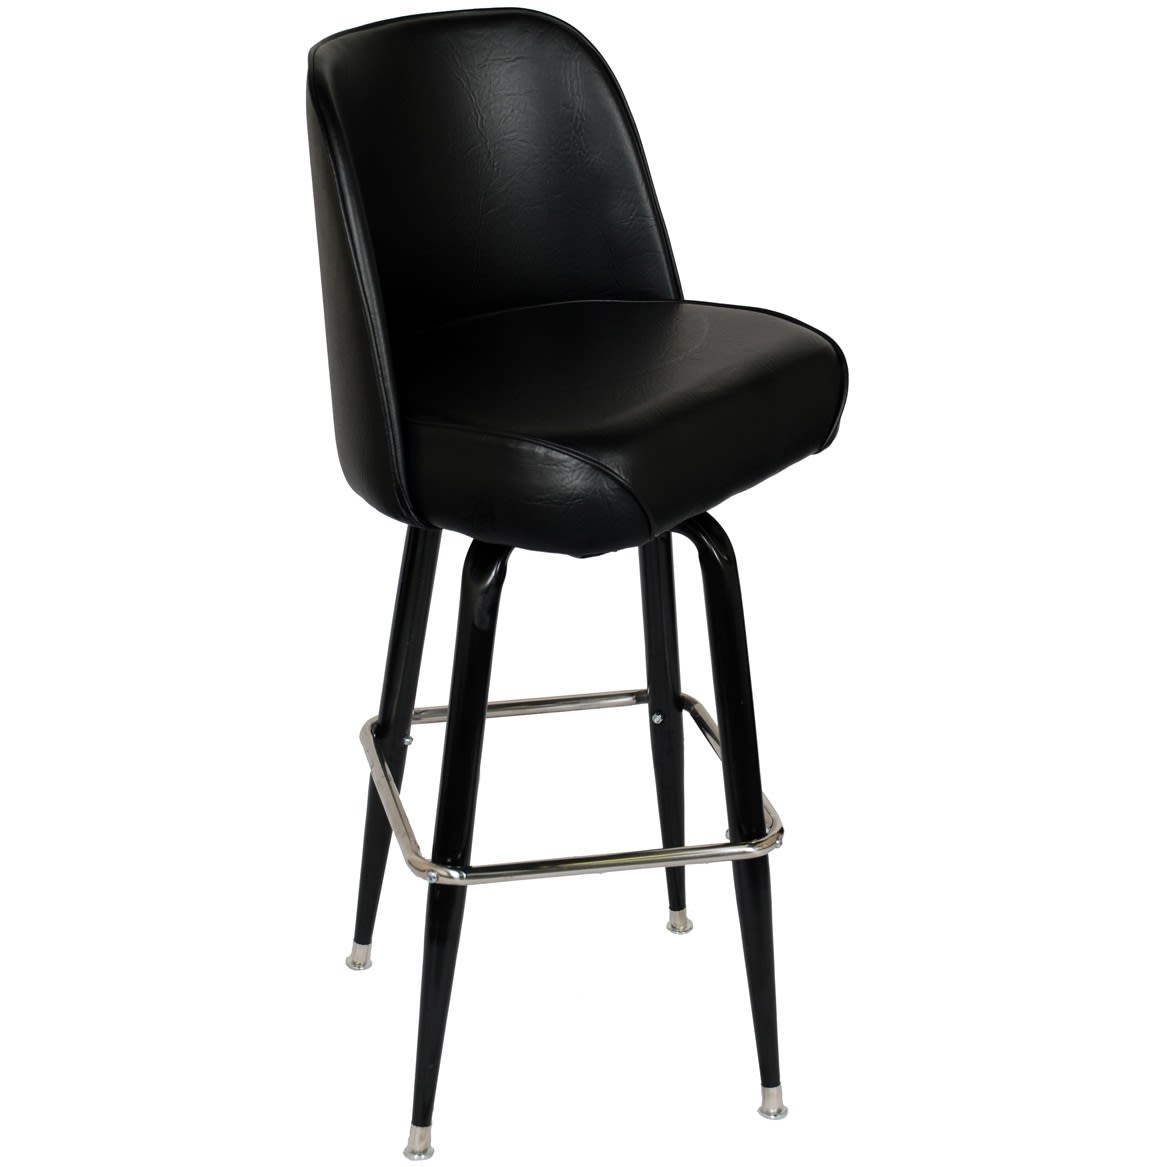 Swivel Bar Stool with Black Coated Frame & Bucket Seat